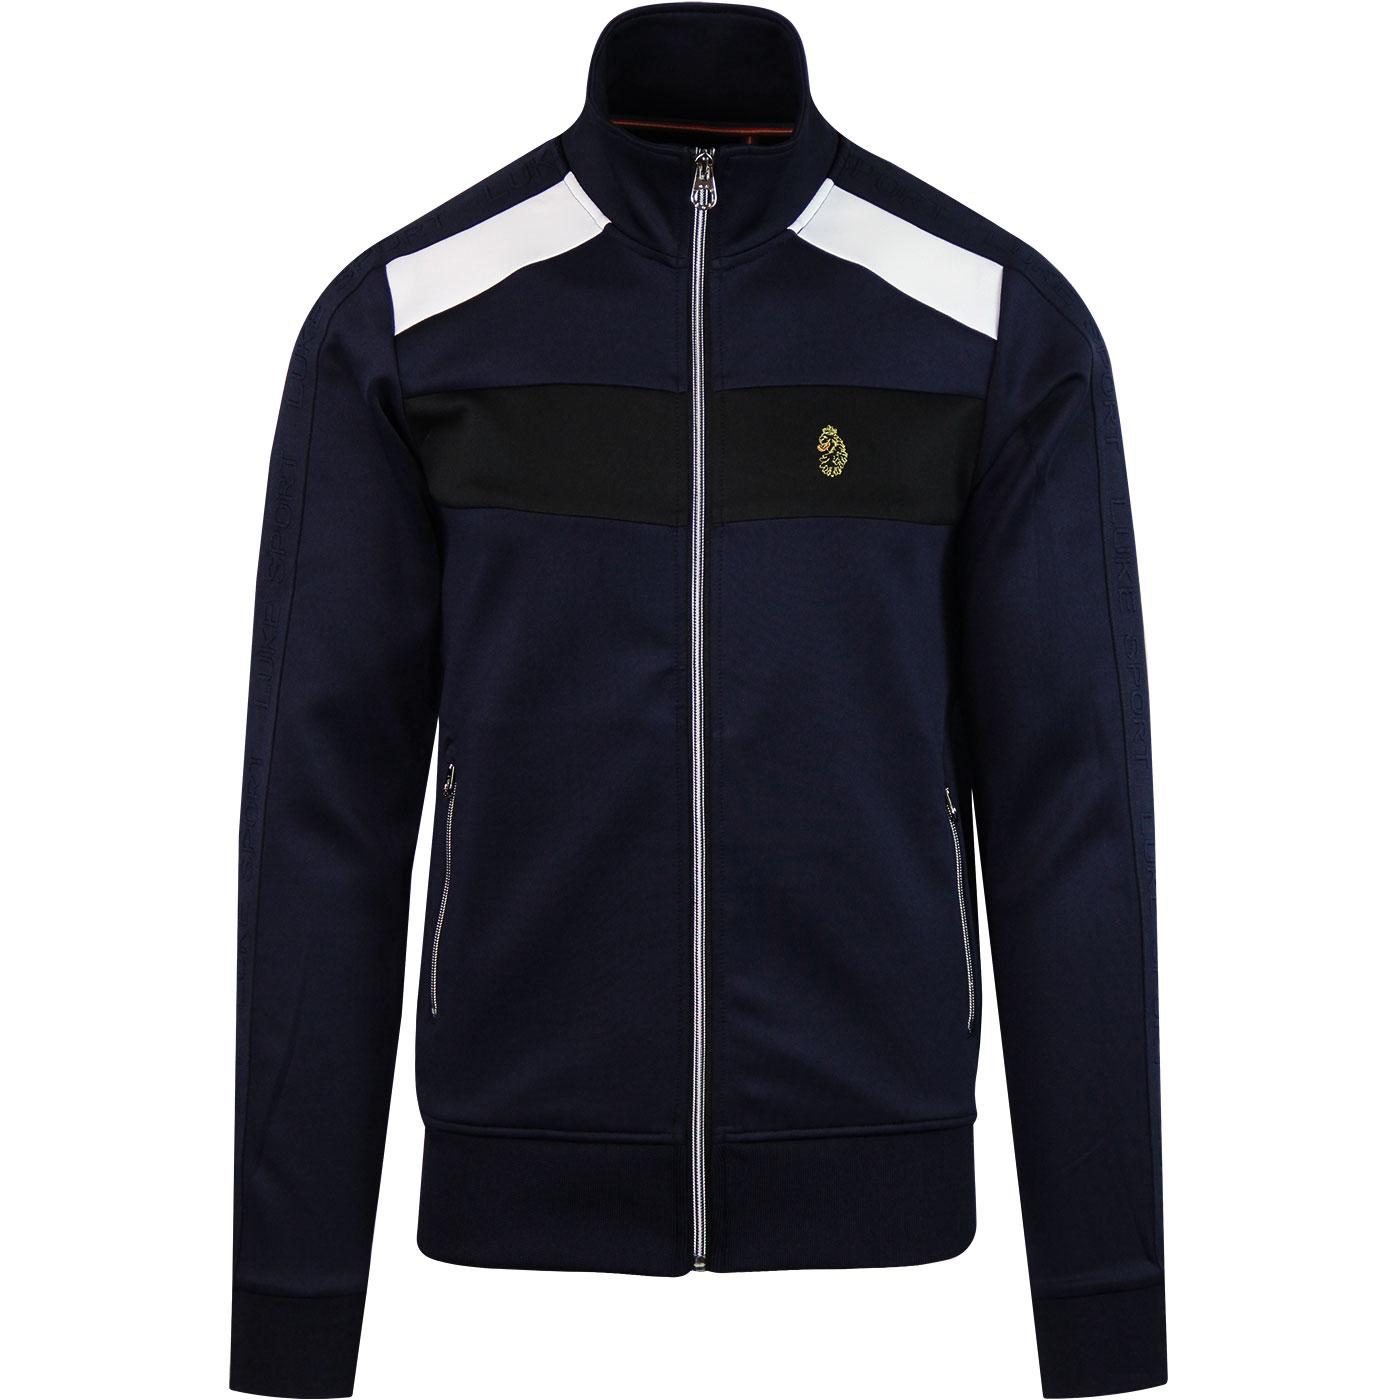 Larkwood LUKE Mens Retro Panel Track Jacket (N)